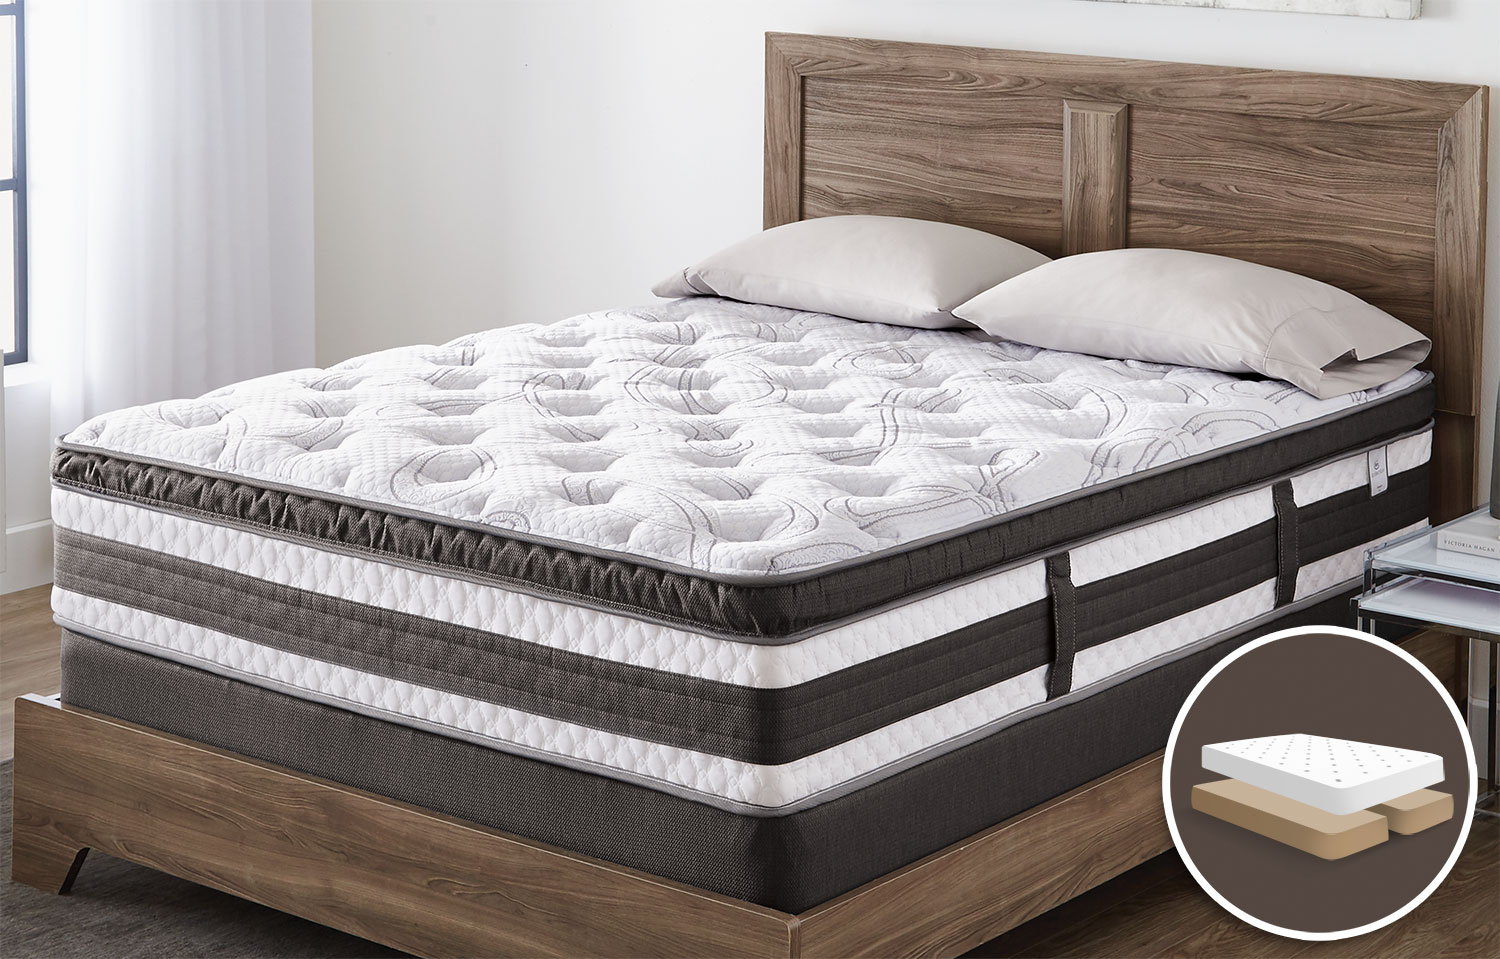 Mattresses and Bedding - Serta iCollection™ Kingsport Euro-Top Luxury Firm Queen Set with Split Boxspring